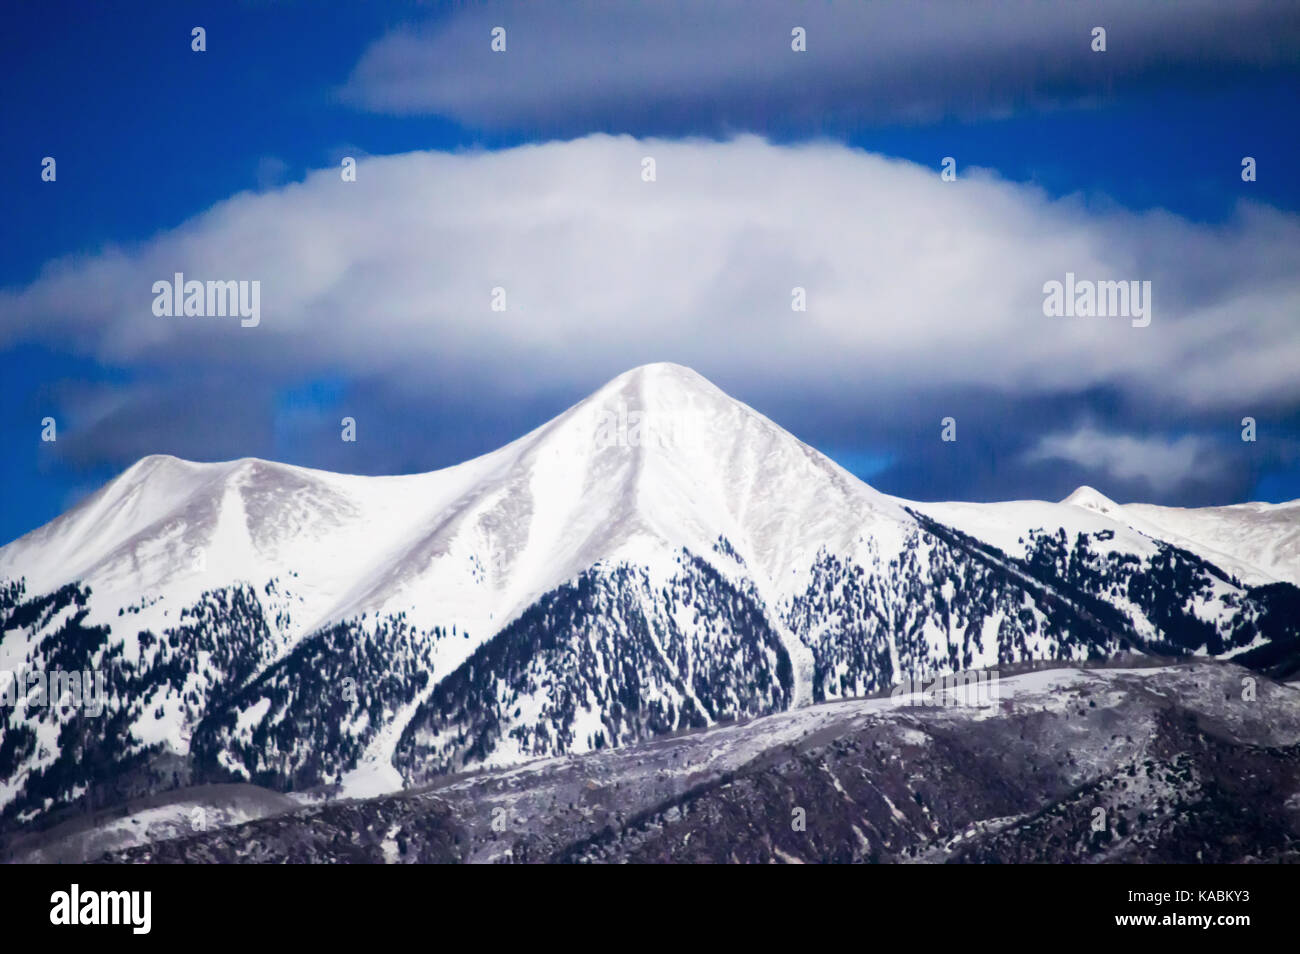 mt baldy gay singles The lower collins area and mt baldy during a break view image  single and multi-day passes  picture of the day: baldy.